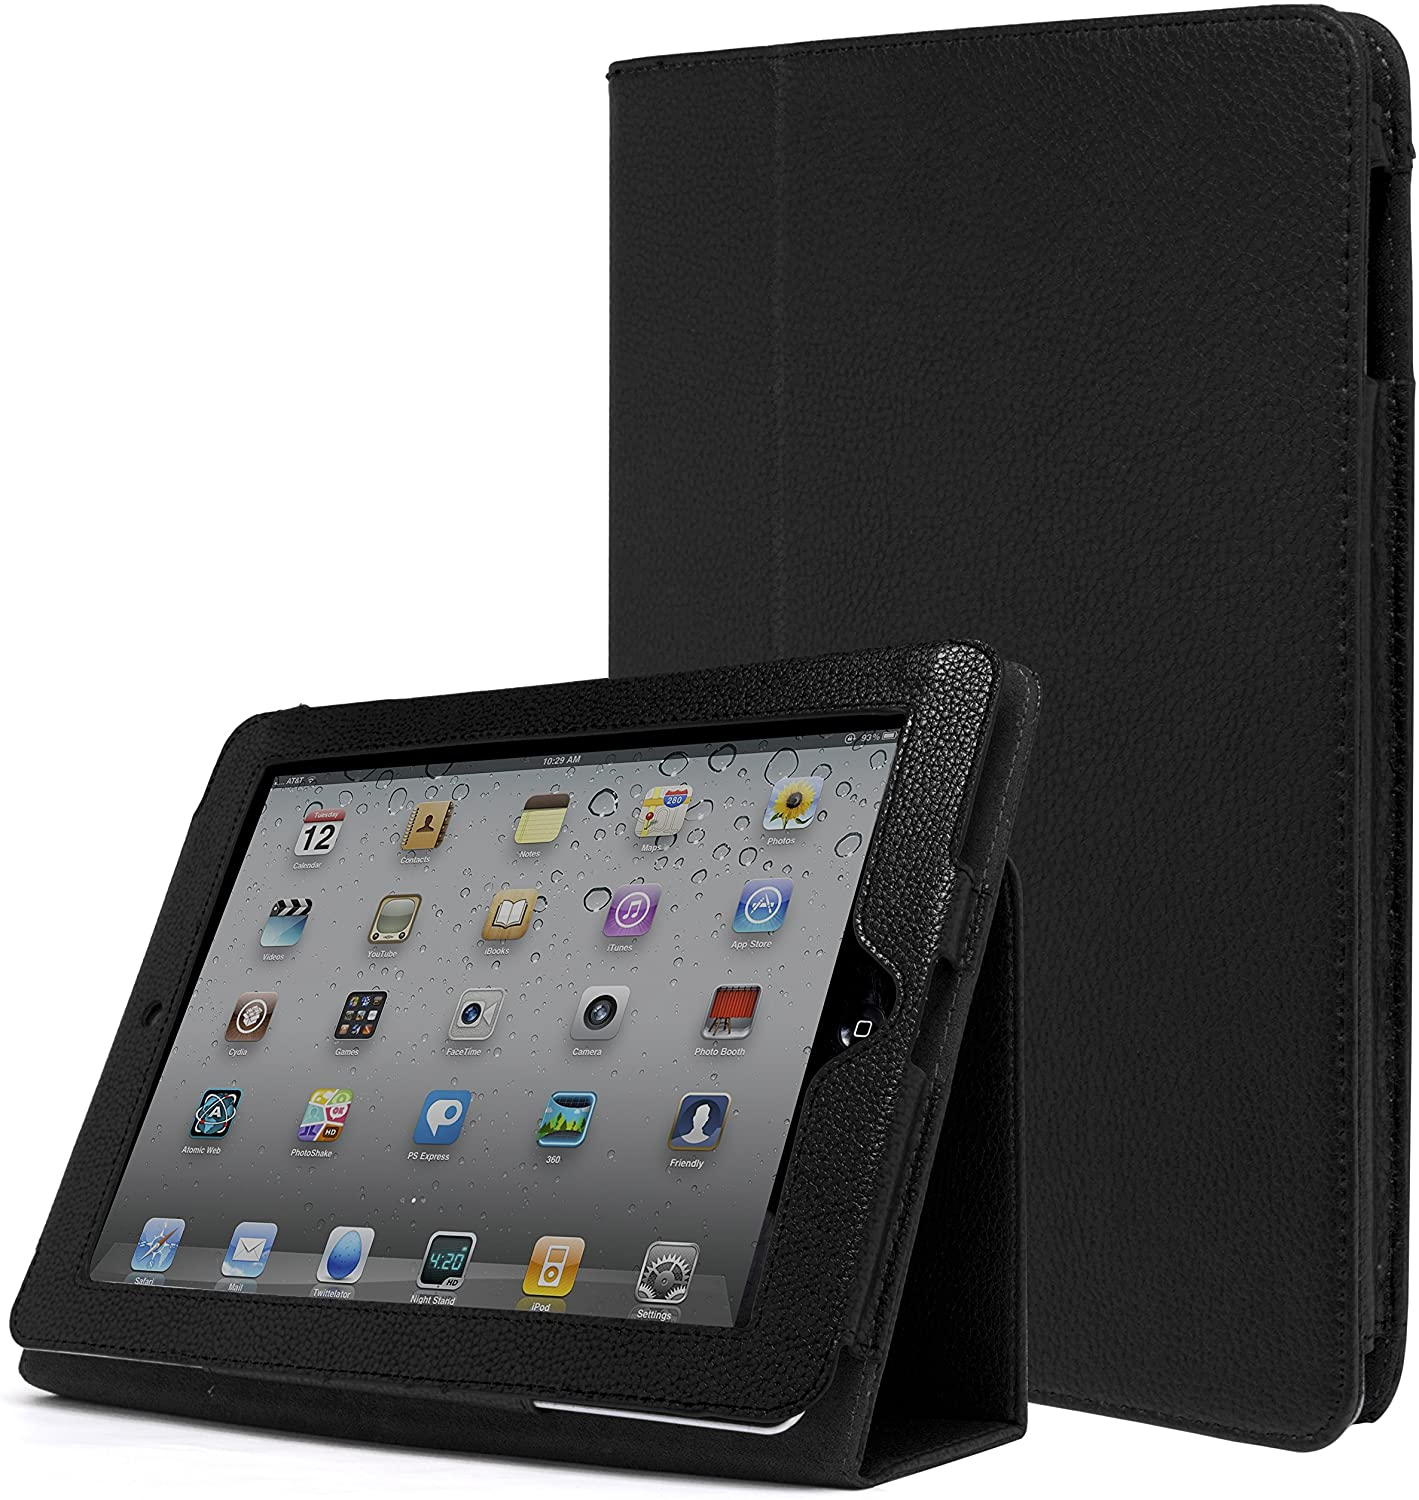 iPad 1 Case, Bastex Folio Synthetic Leather Case Cover with Built-in Stand for Apple iPad 1 1st Generation - Black